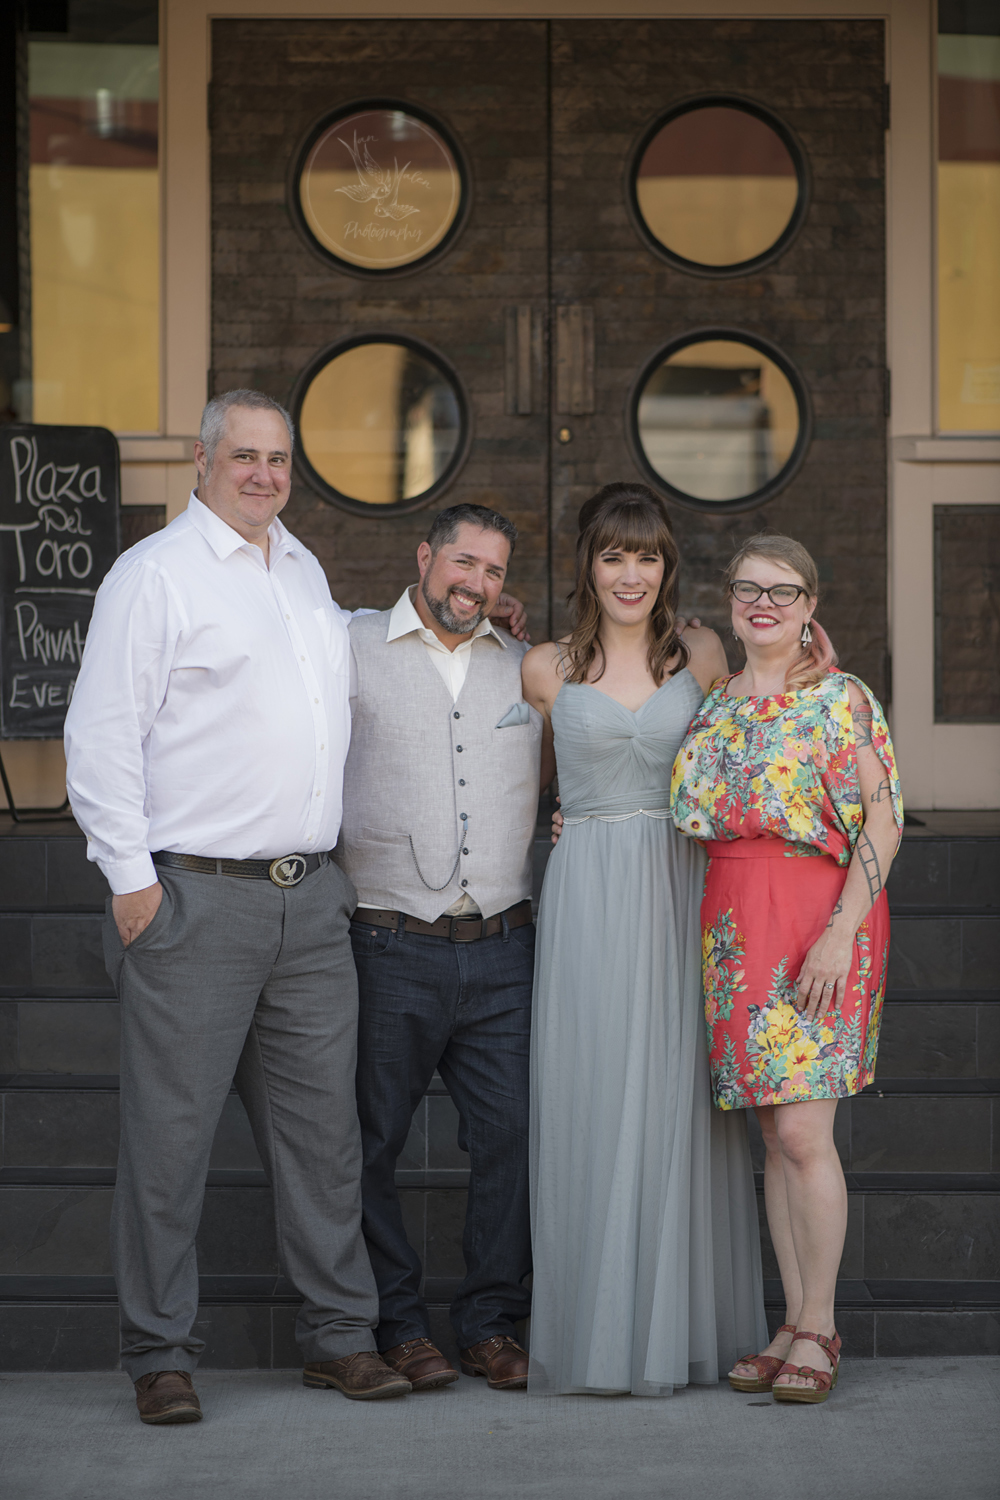 Officiant, the happy couple, and the photographer. Friends, couples, and bowling team extraordinaire!